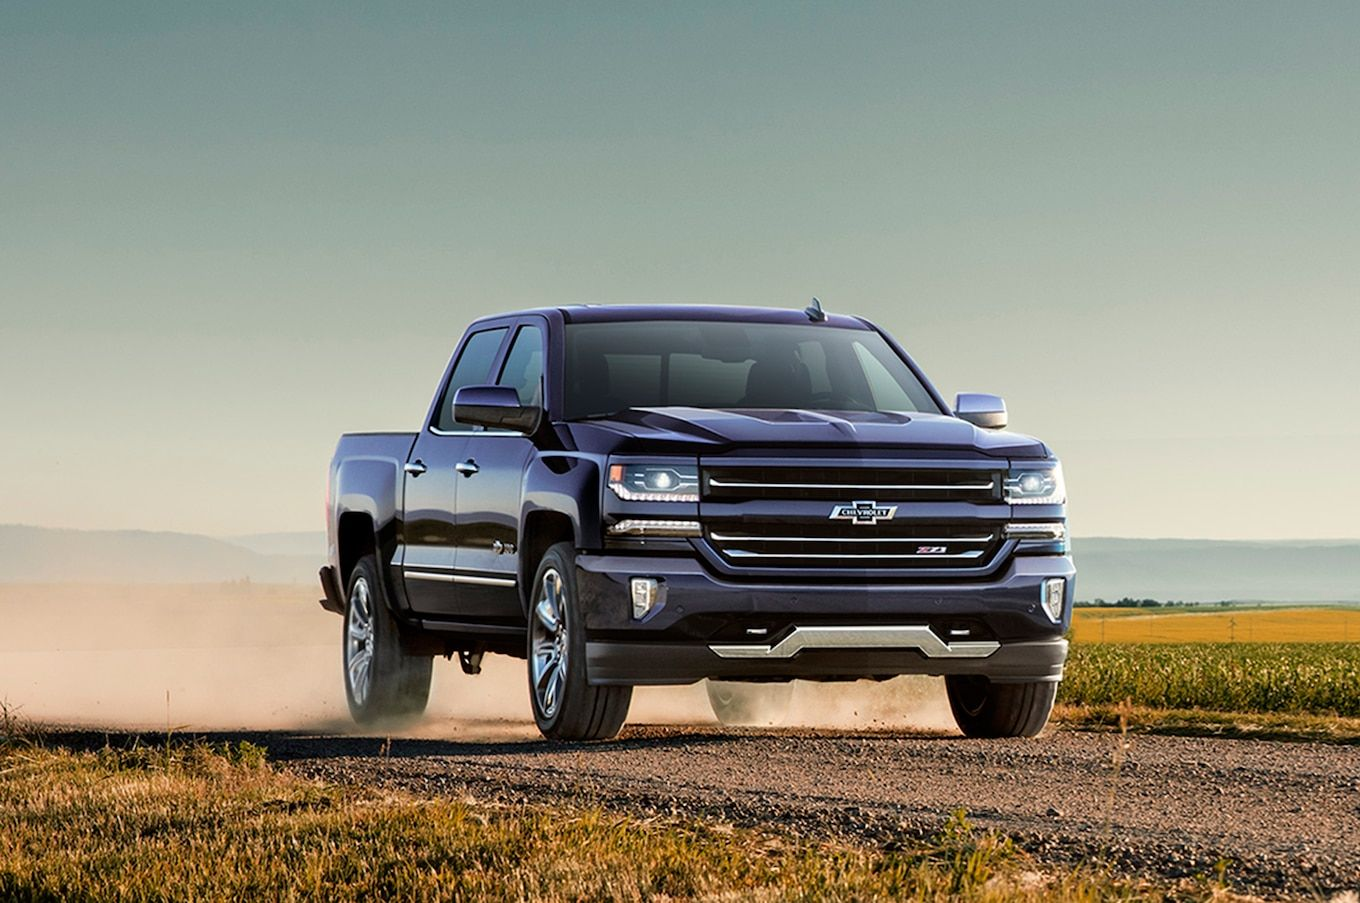 What is Chevy planning with the next-gen Silverado truck